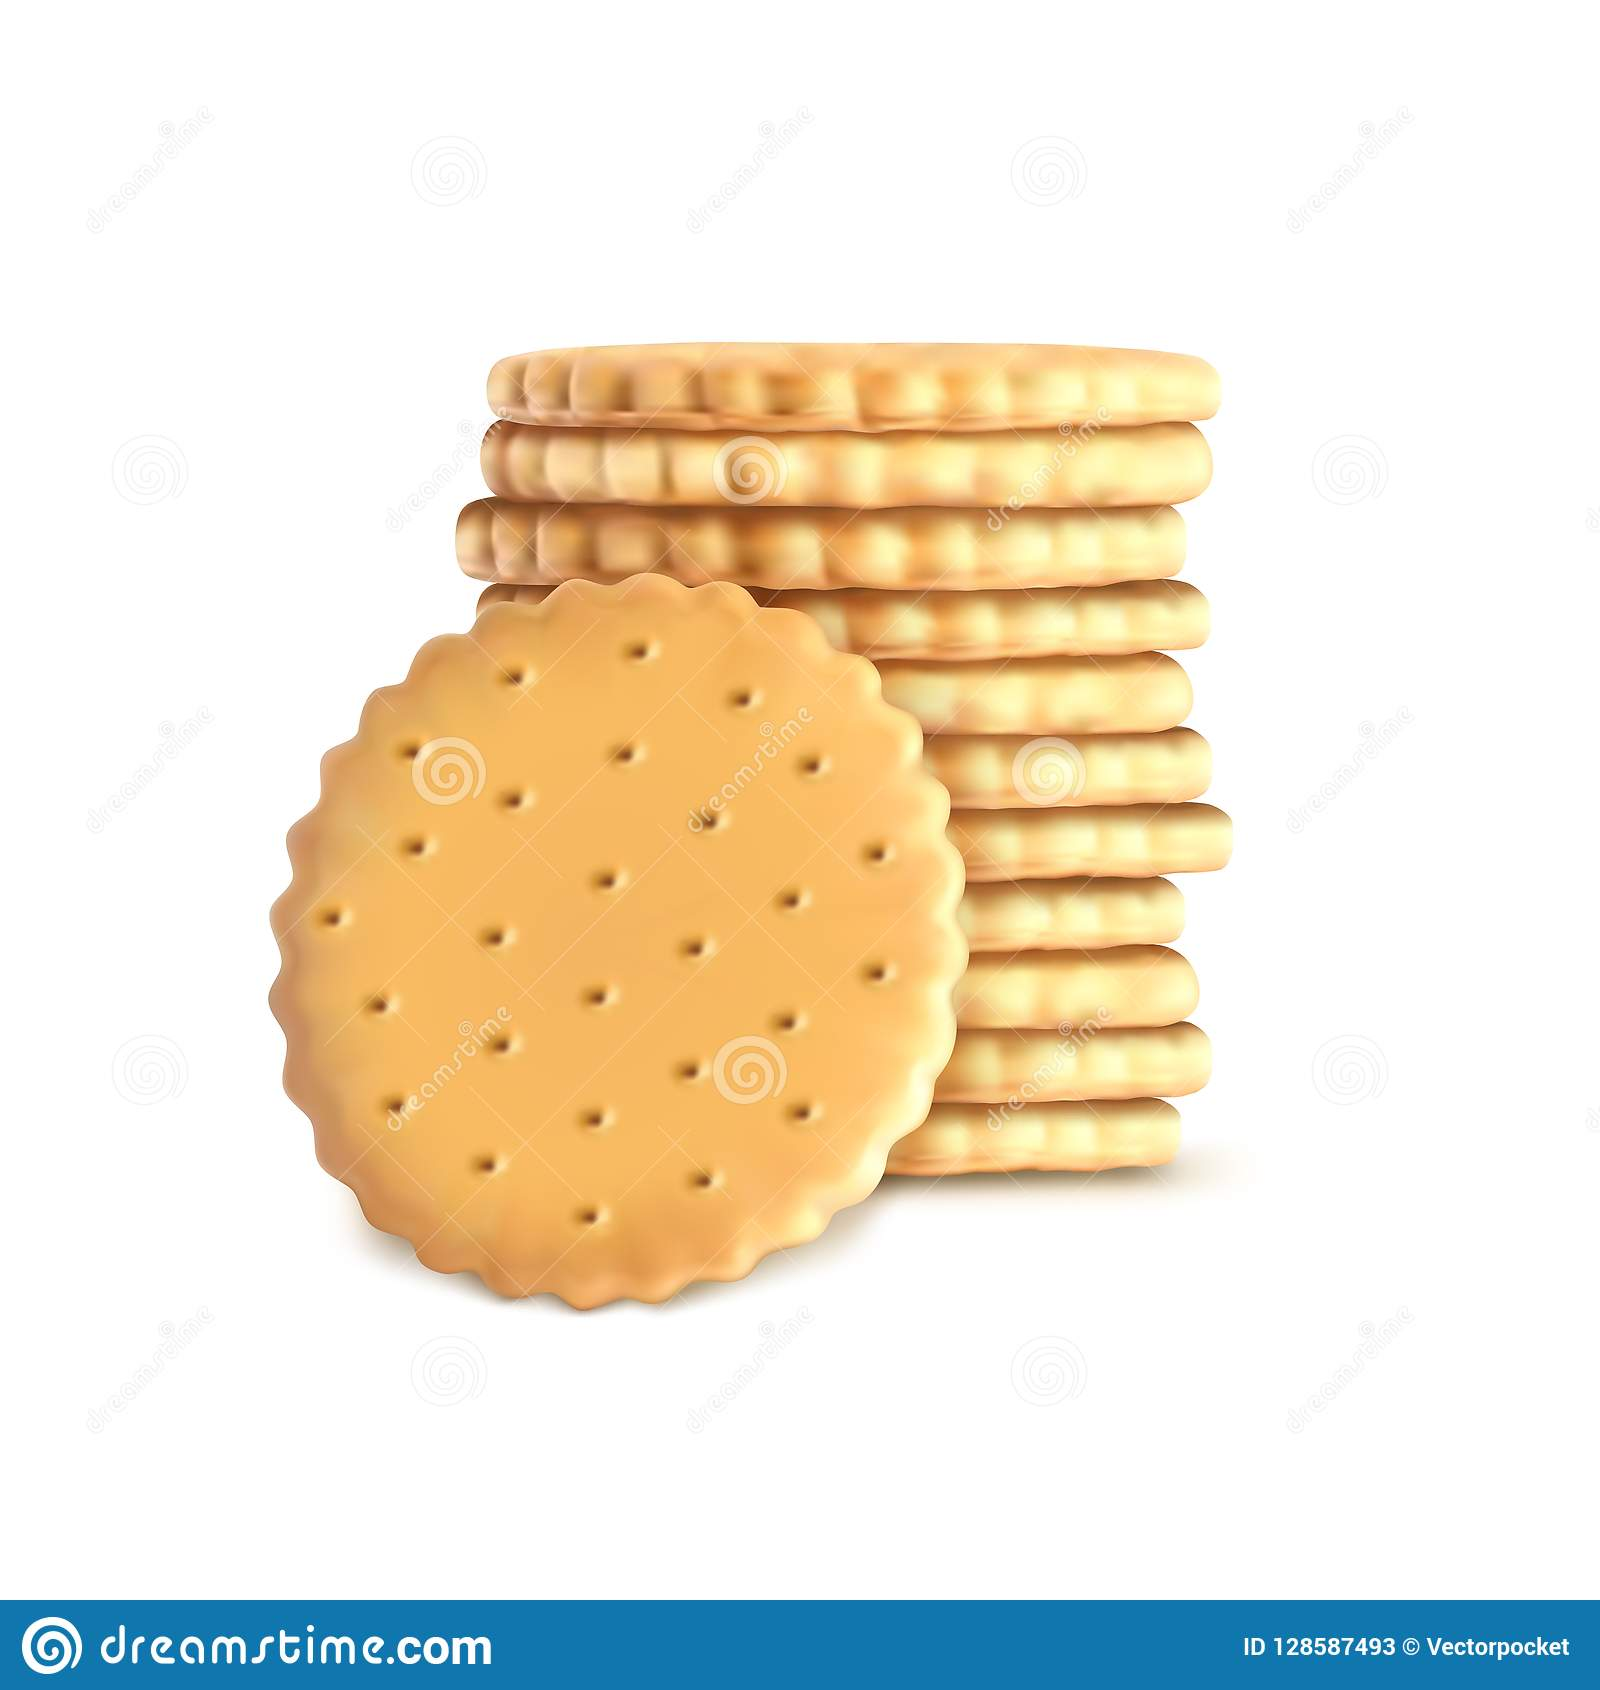 stack of round biscuit cookies. Template, mockup for crackers isolated on white background. Whole wheat biscuit